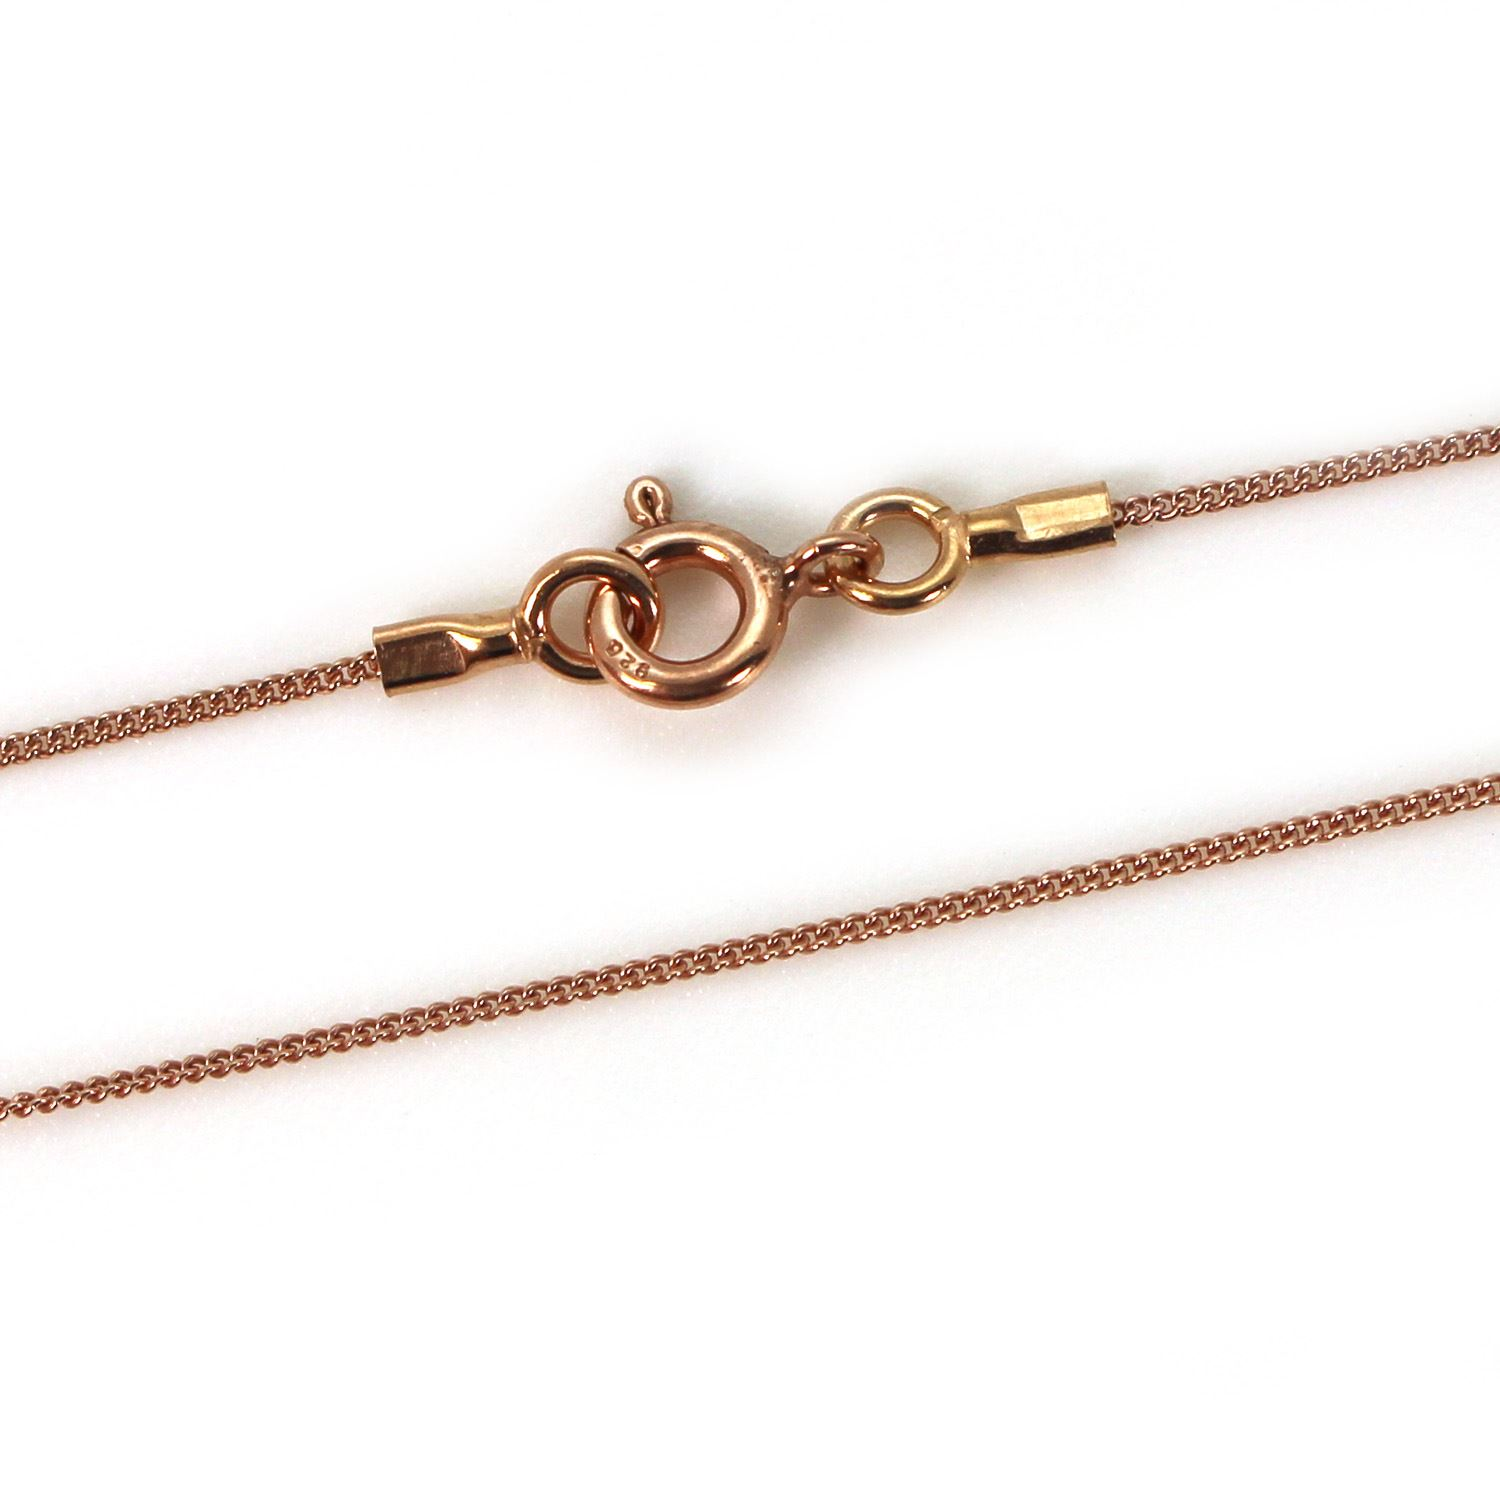 Rose Gold Plated Necklace Chain - Tiny Curb Chain - 16-36 inches